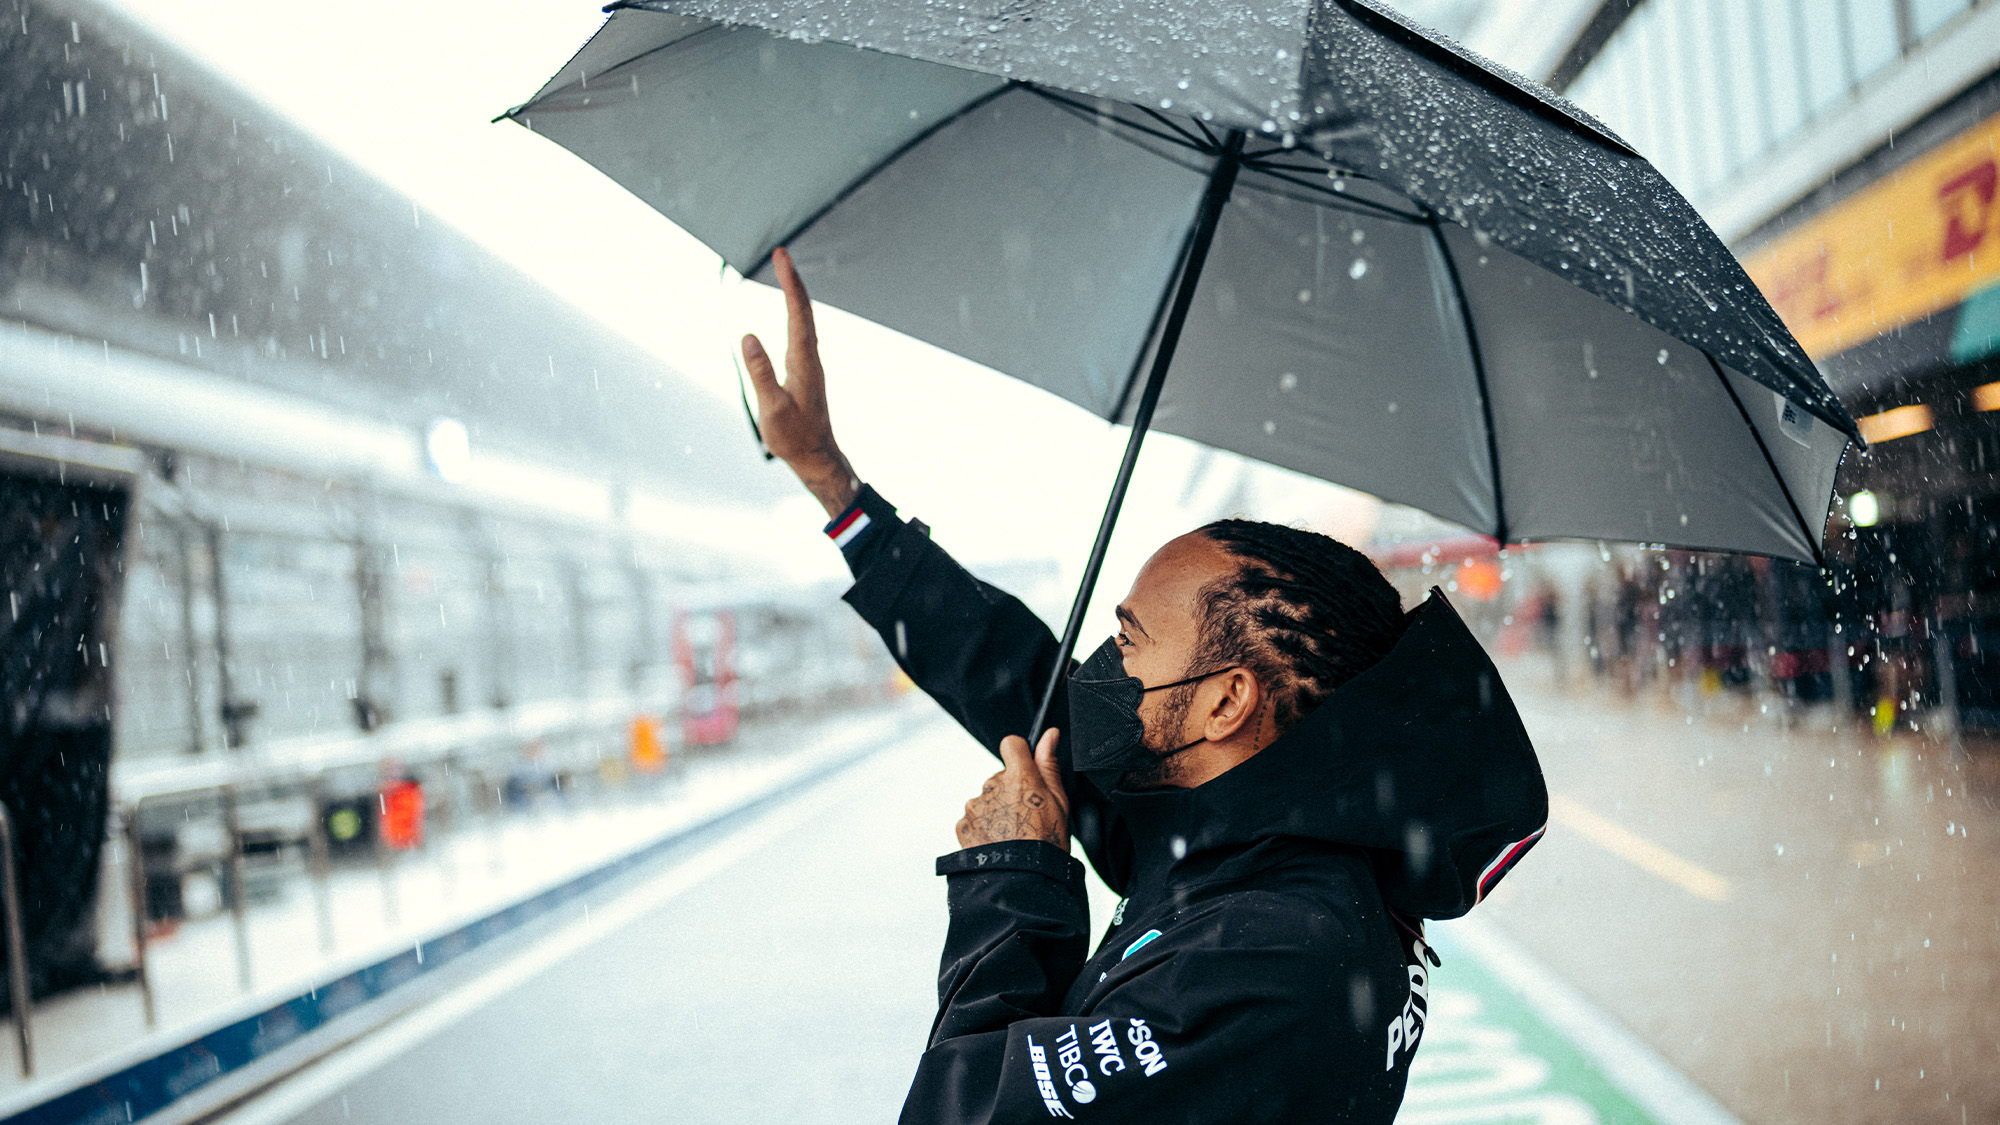 Lewis Hamilton waves to the crowd in wet Sochi